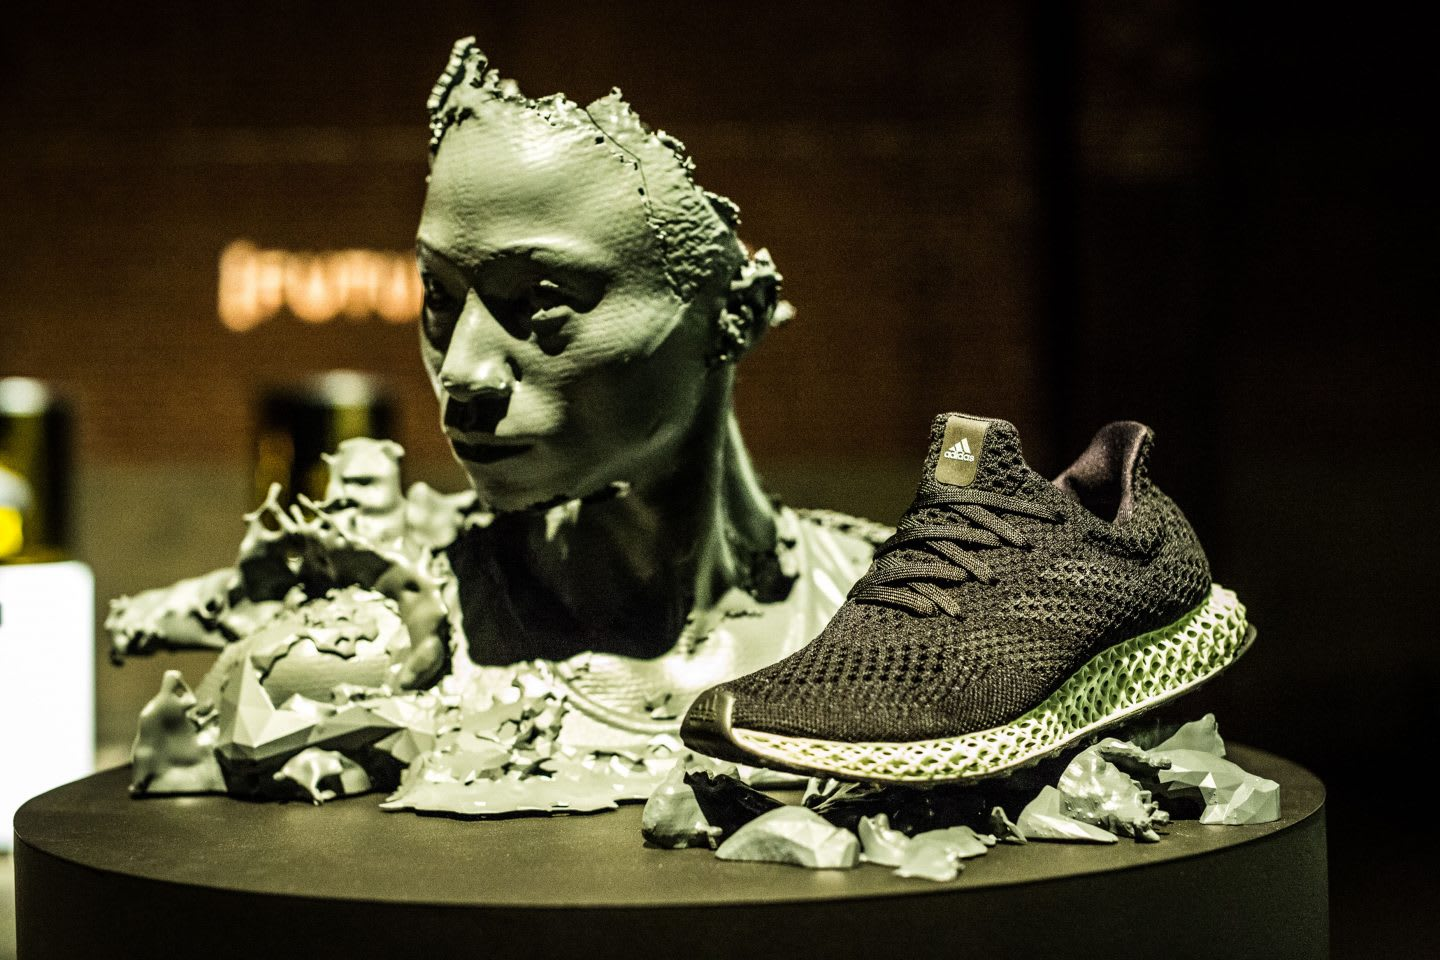 Futurecraft 4D Tori Bowie Shoe Face